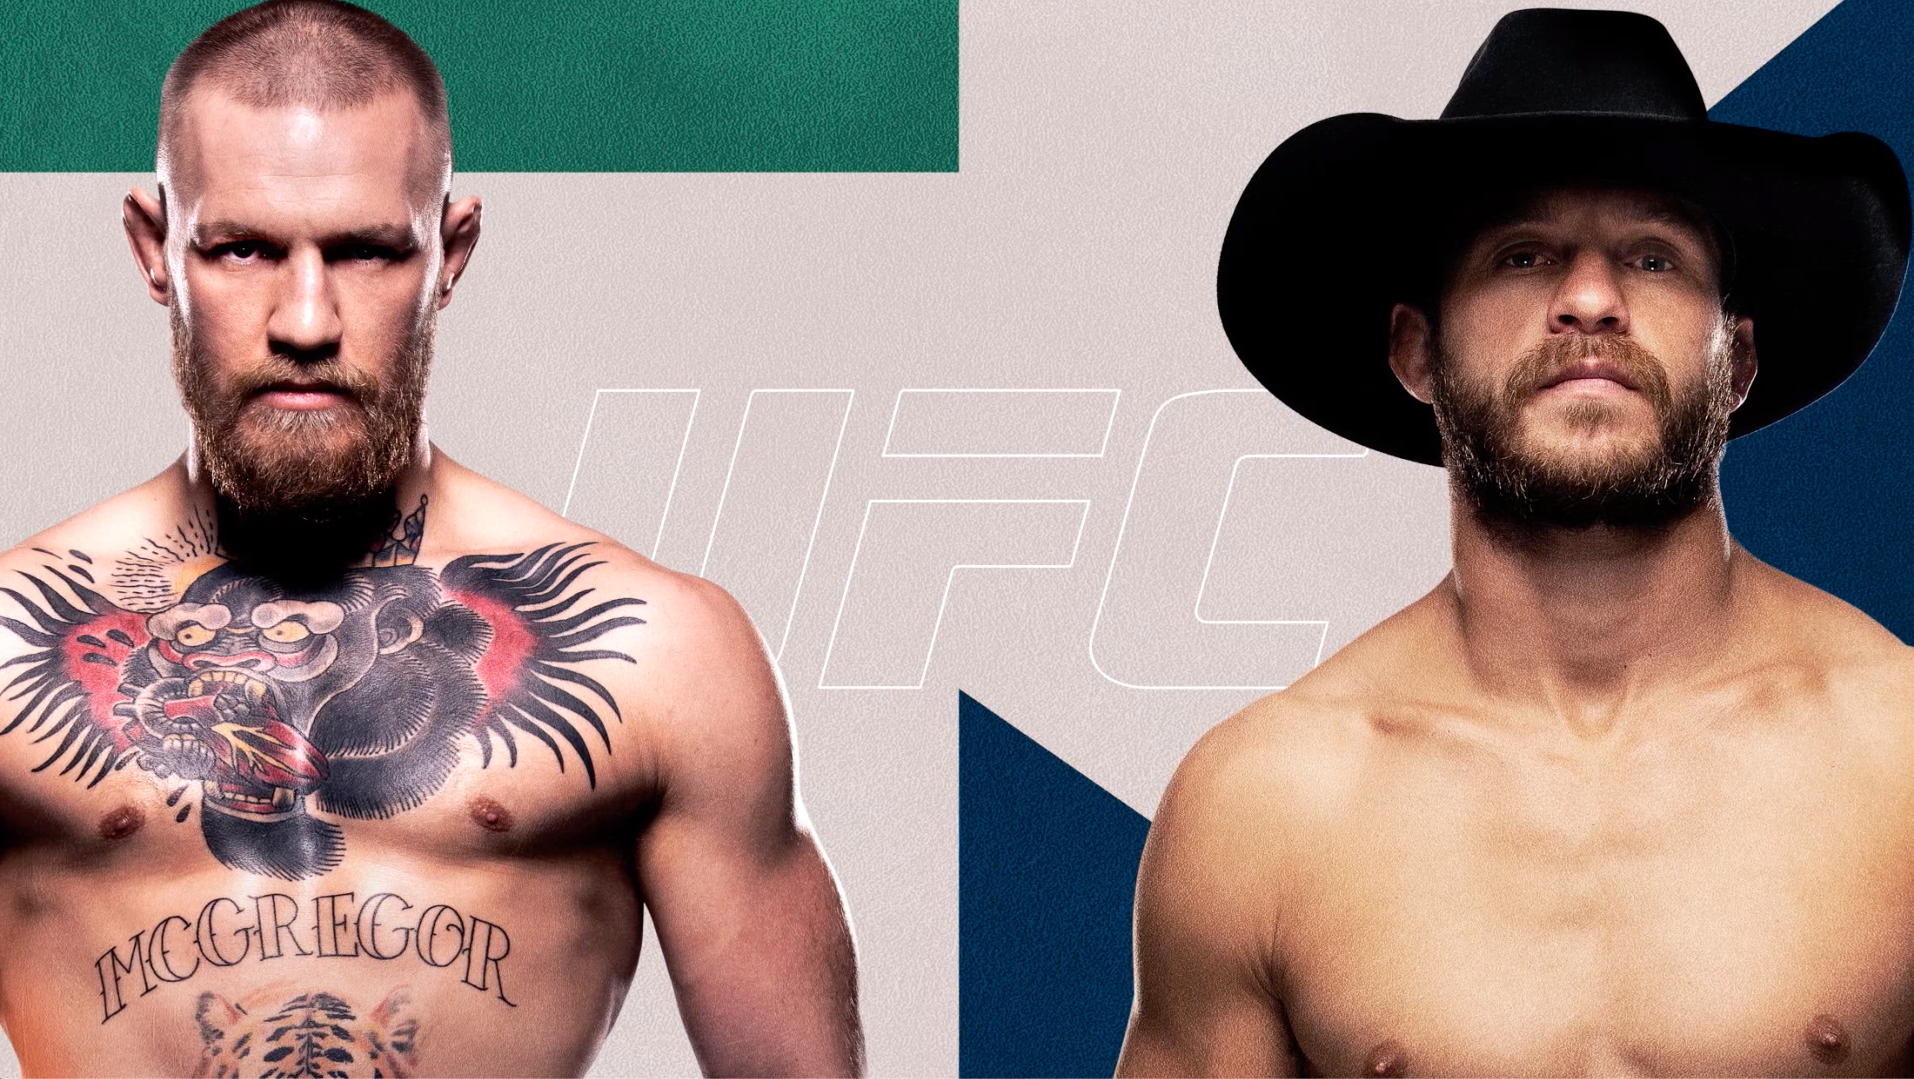 Conteo Regresivo Ufc 246 Mcgregor Vs Cowboy Ufc